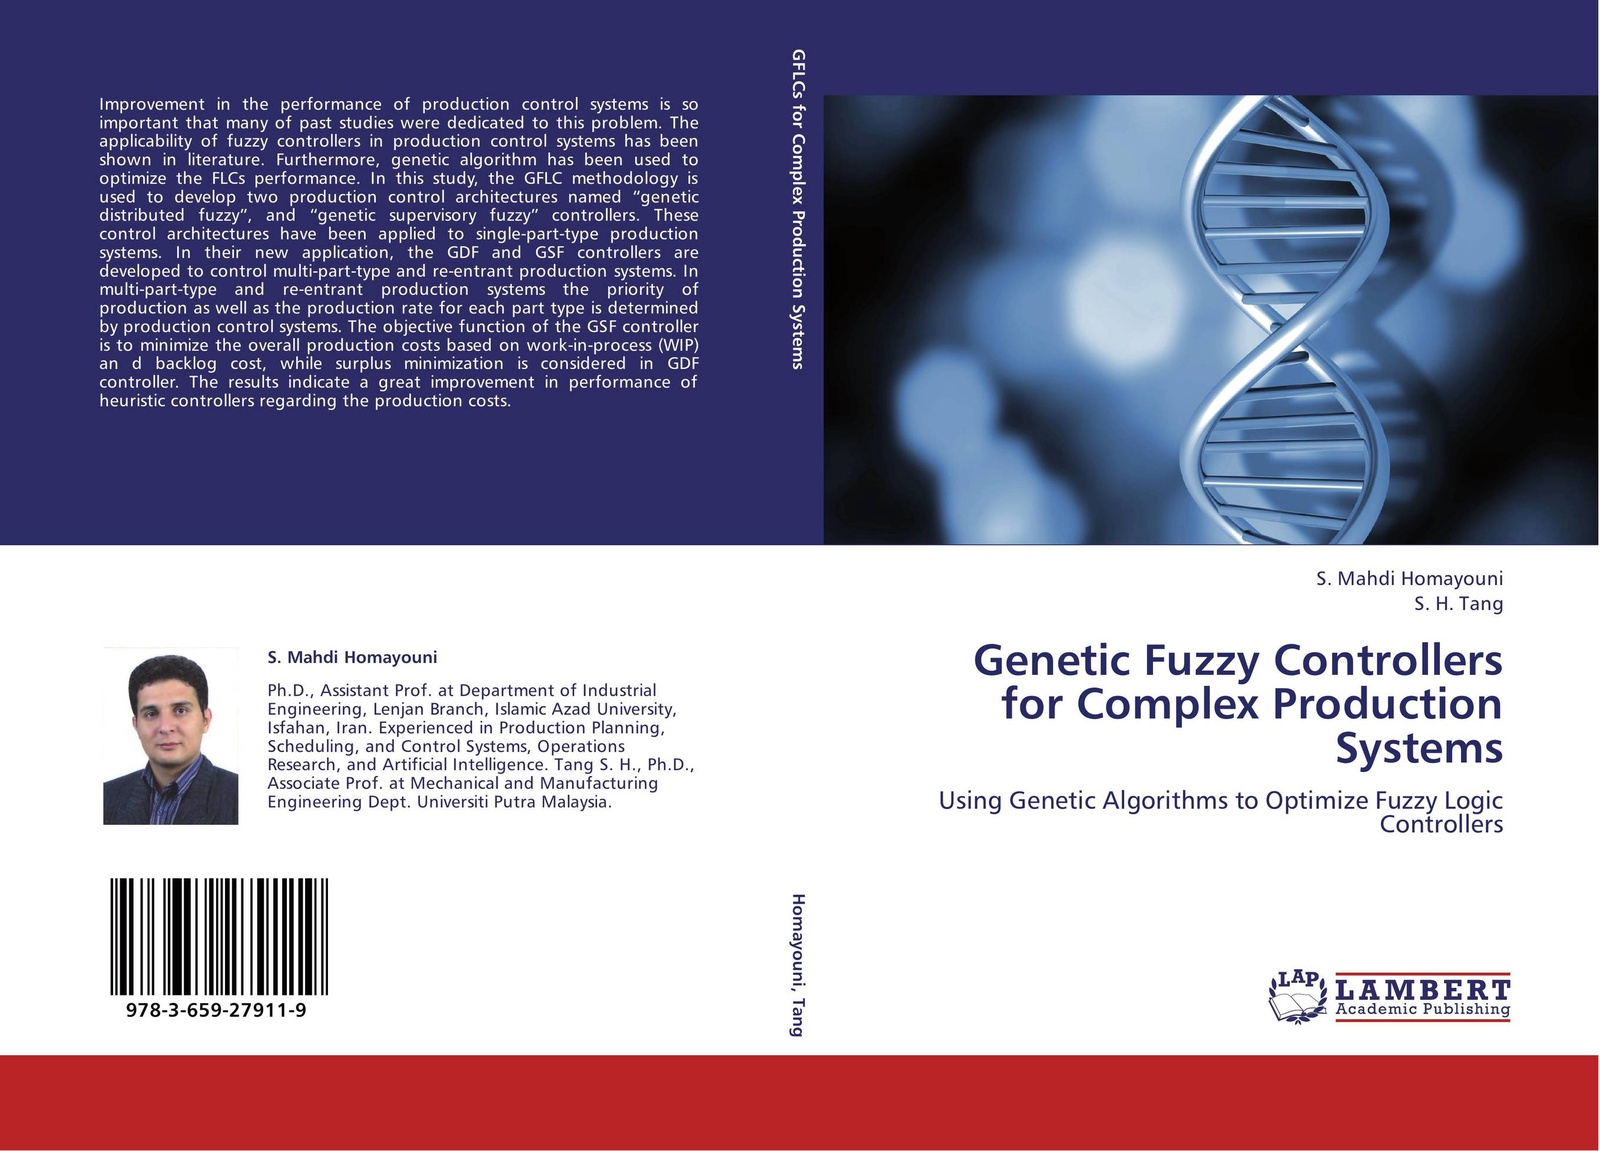 S. Mahdi Homayouni and S. H. Tang Genetic Fuzzy Controllers for Complex Production Systems didanna habtamu lemma livestock production systems in the tropics